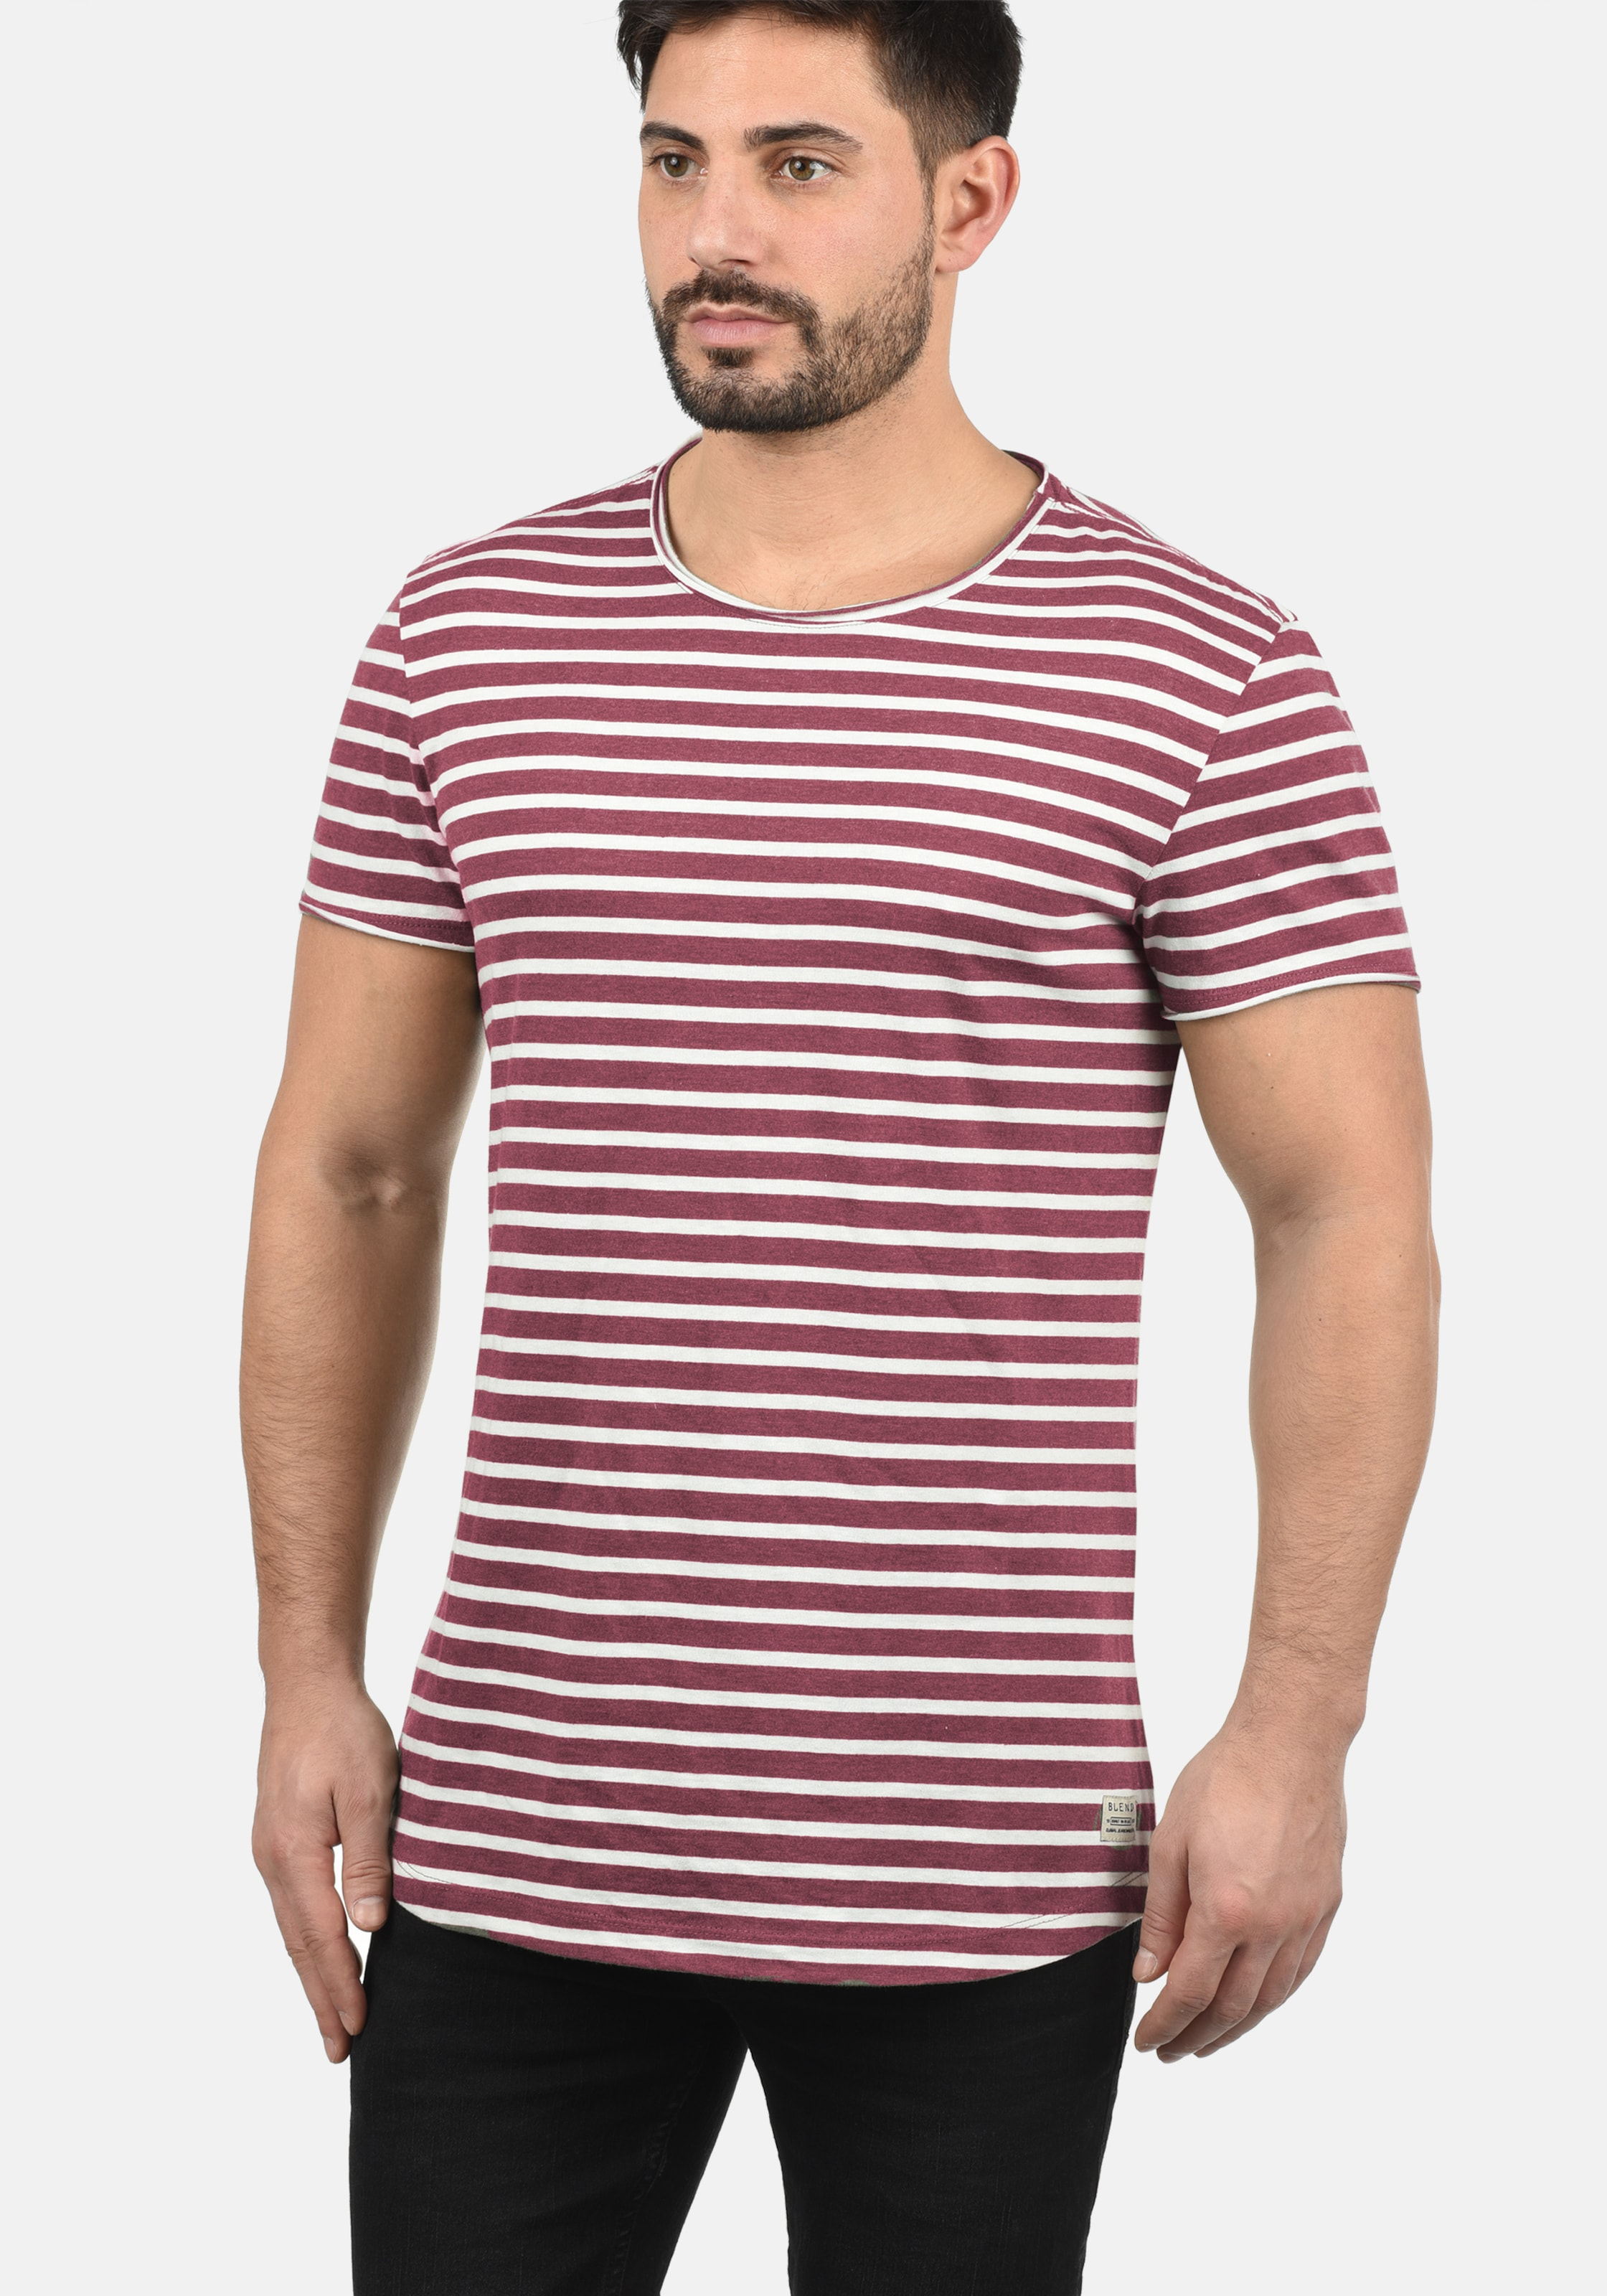 In LilaRot Shirt Blend Blend Blend LilaRot Shirt In Shirt In nNOv8m0w